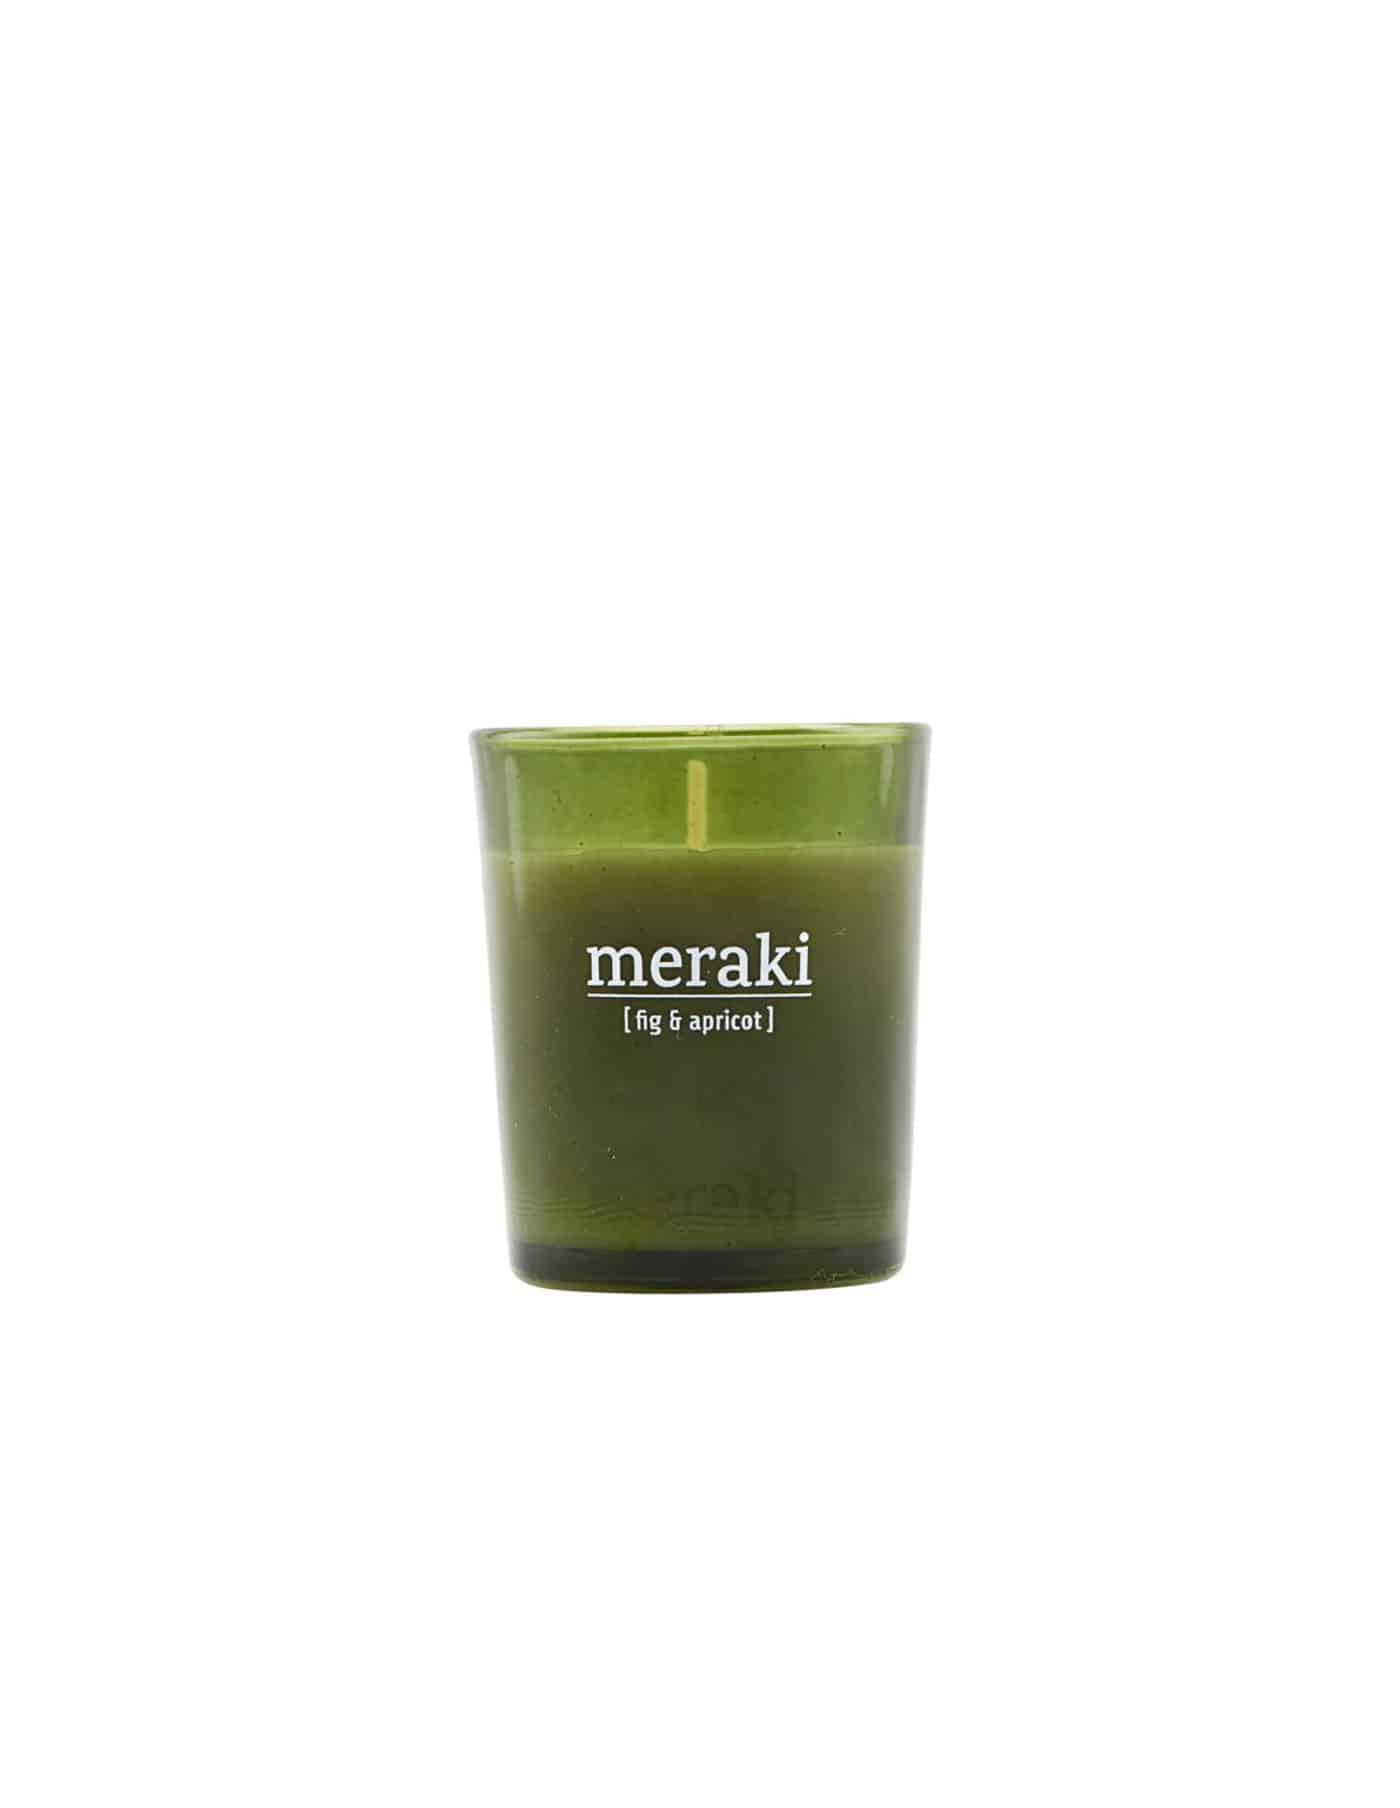 Meraki Fig & Apricot Scented Candle, Small